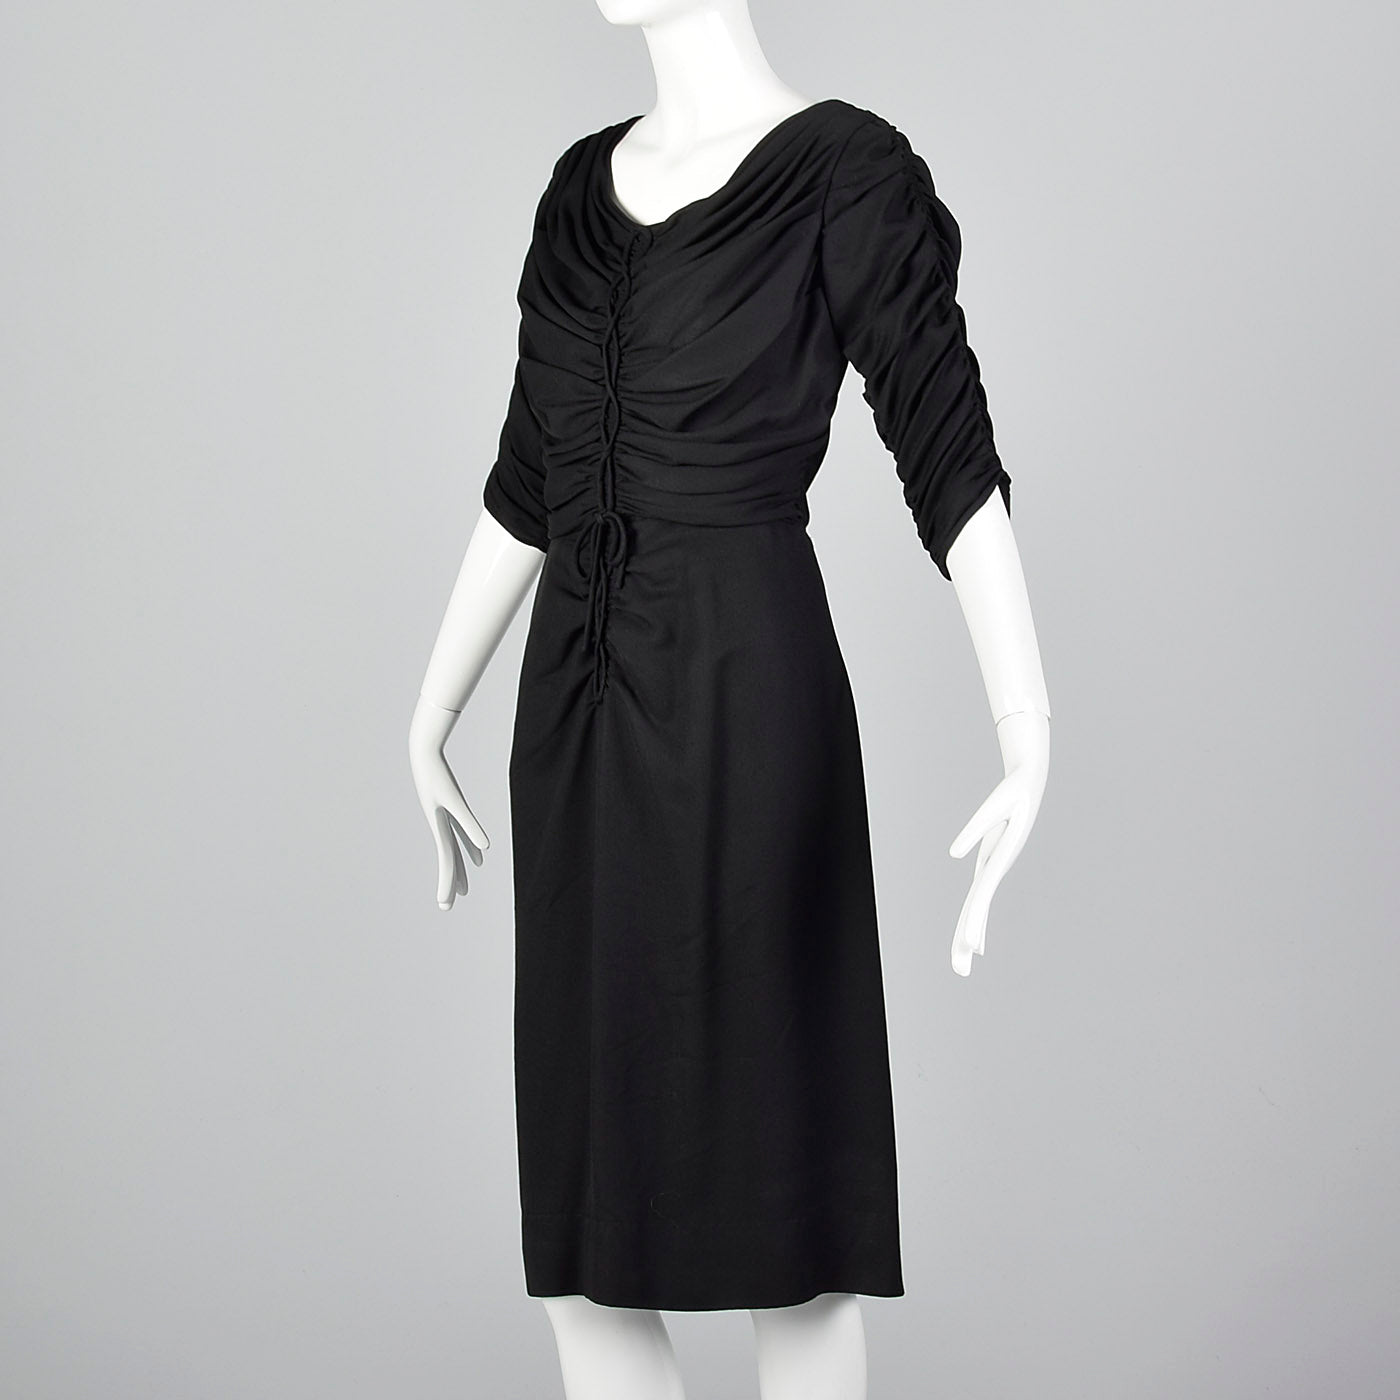 1950s Black Rayon Dress with Gathered Bodice